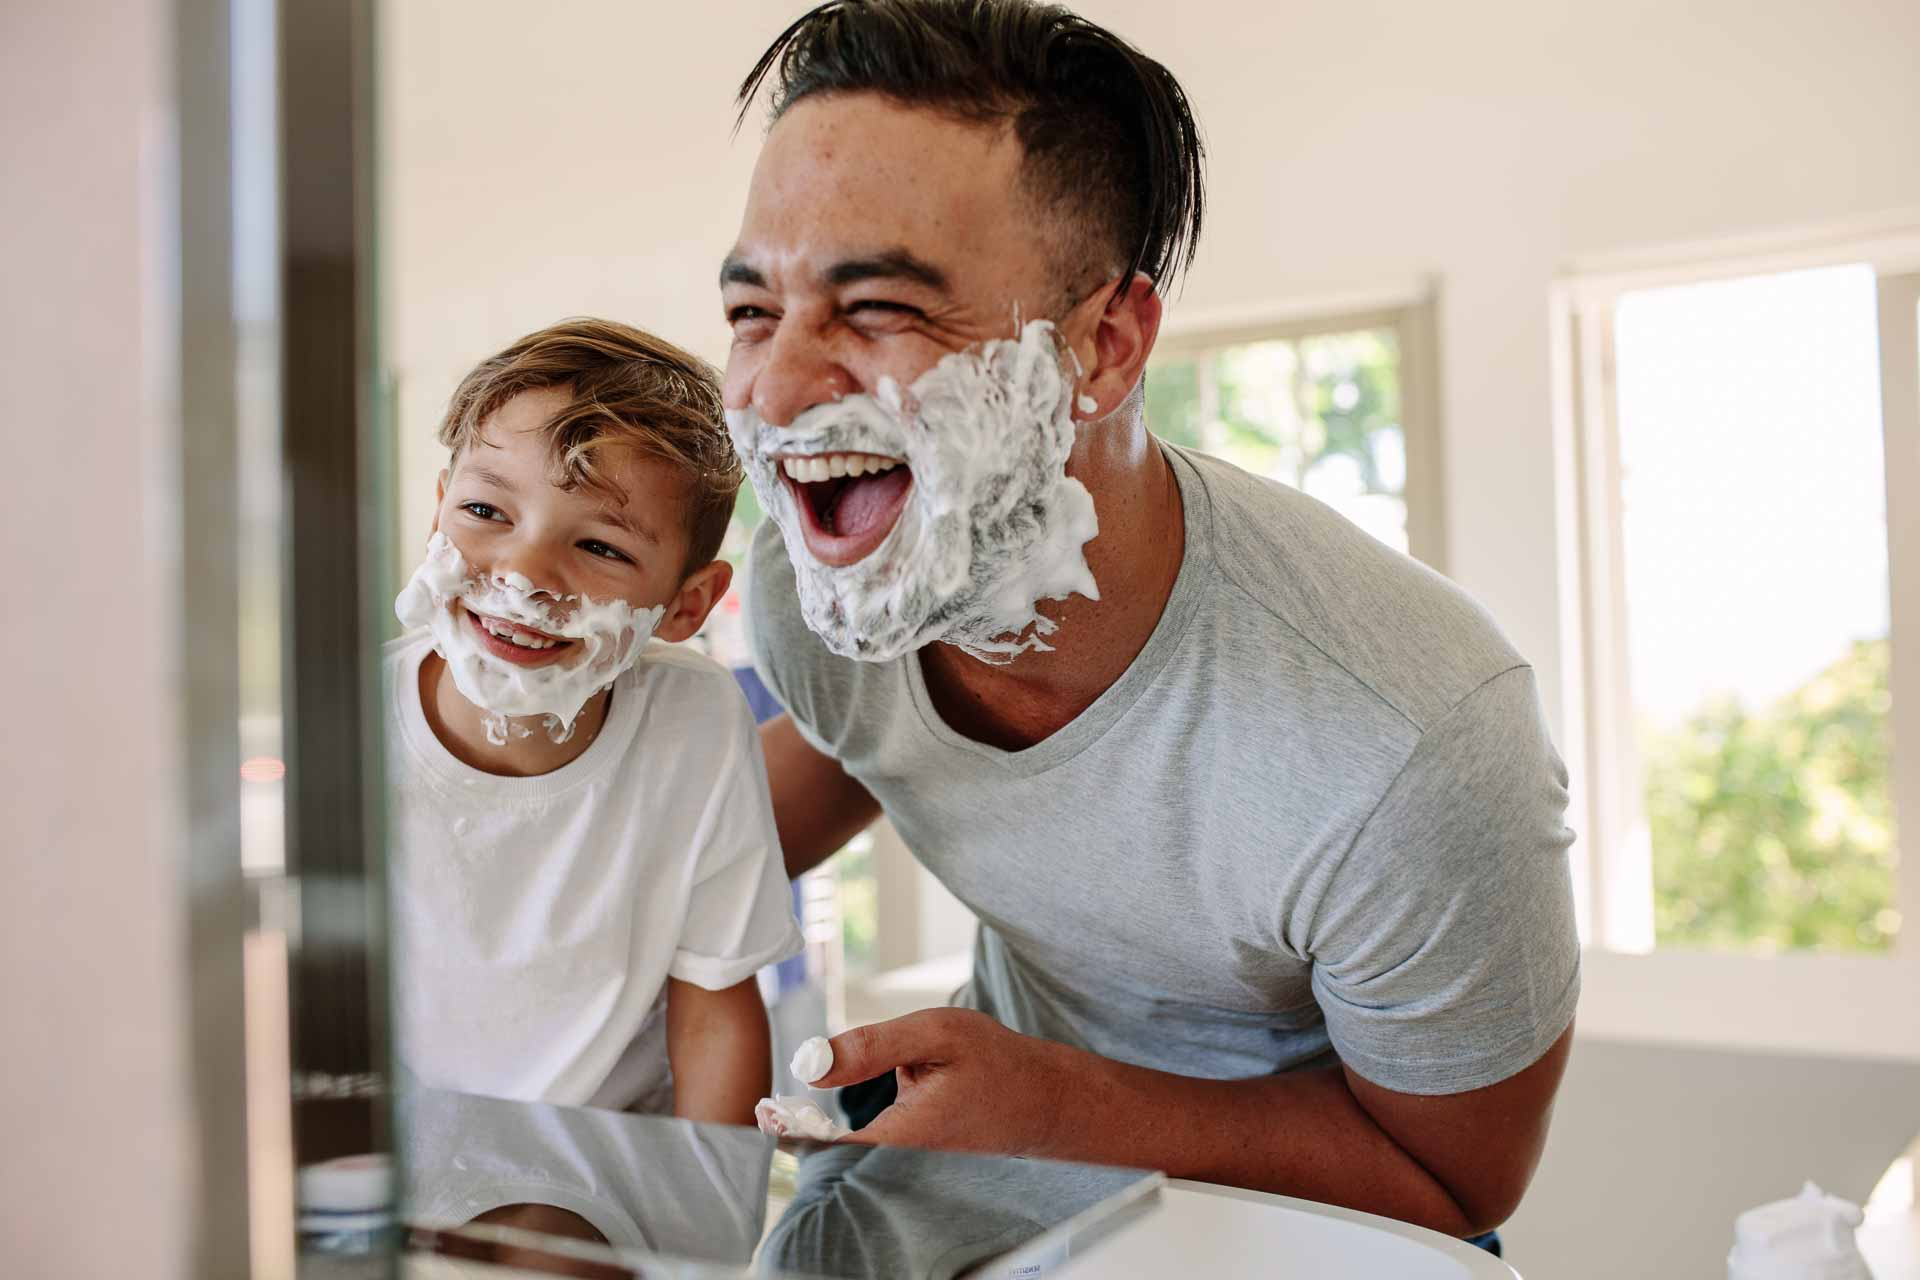 Dad and son laughing while putting shaving cream on their faces and looking in the mirror.